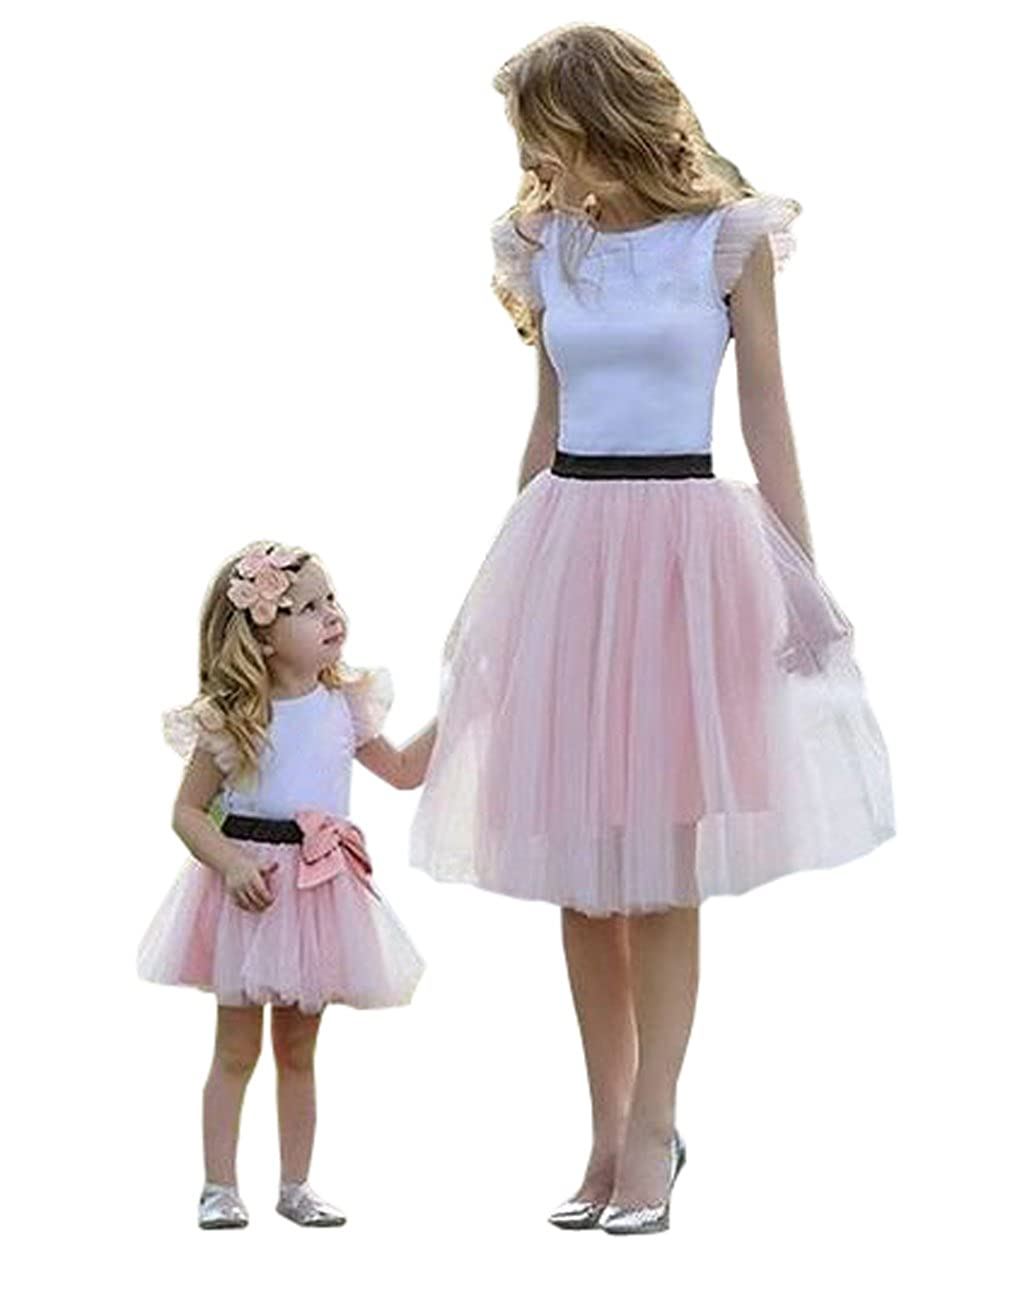 66b5290db609e Family Matching Mom Baby Girls White Tshirt Top and Pink Tutu Skirt  Clothing Sets